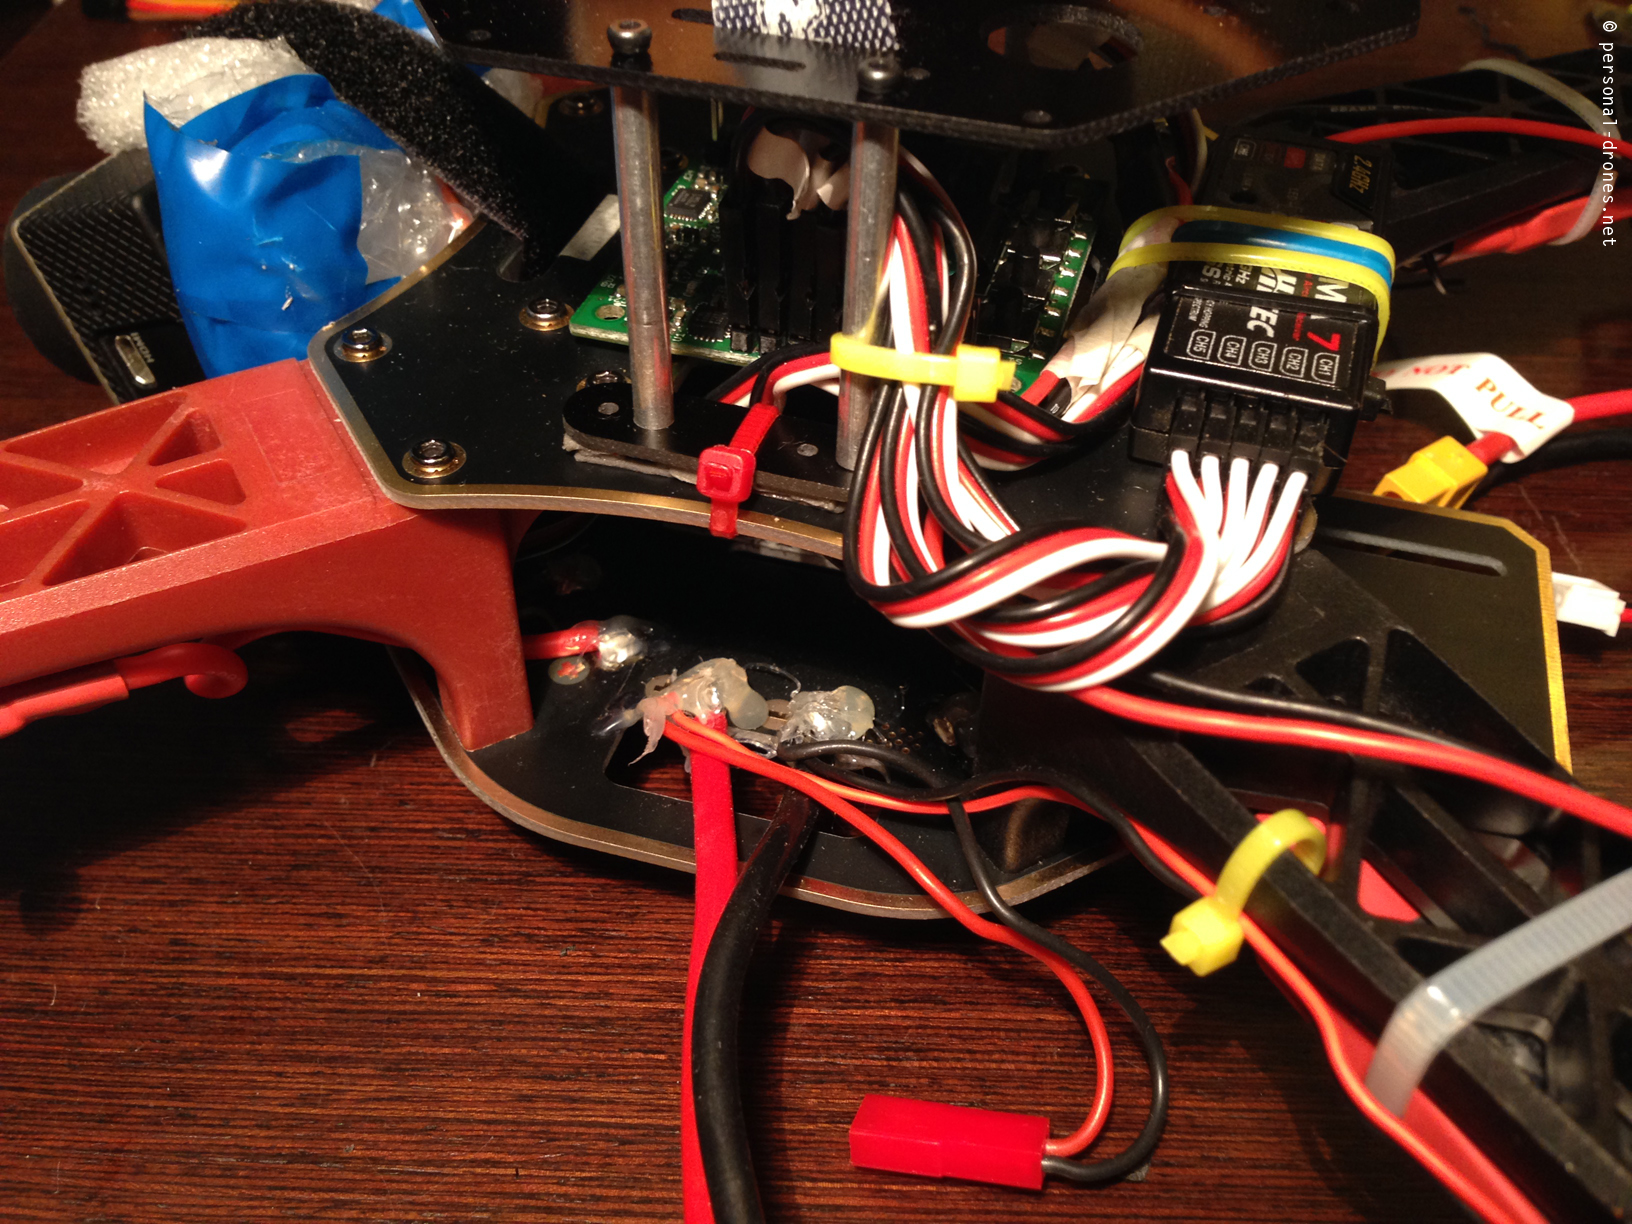 how to personal drones page 3 rc timer quadcopter kk2 control board and alware mount detail 2